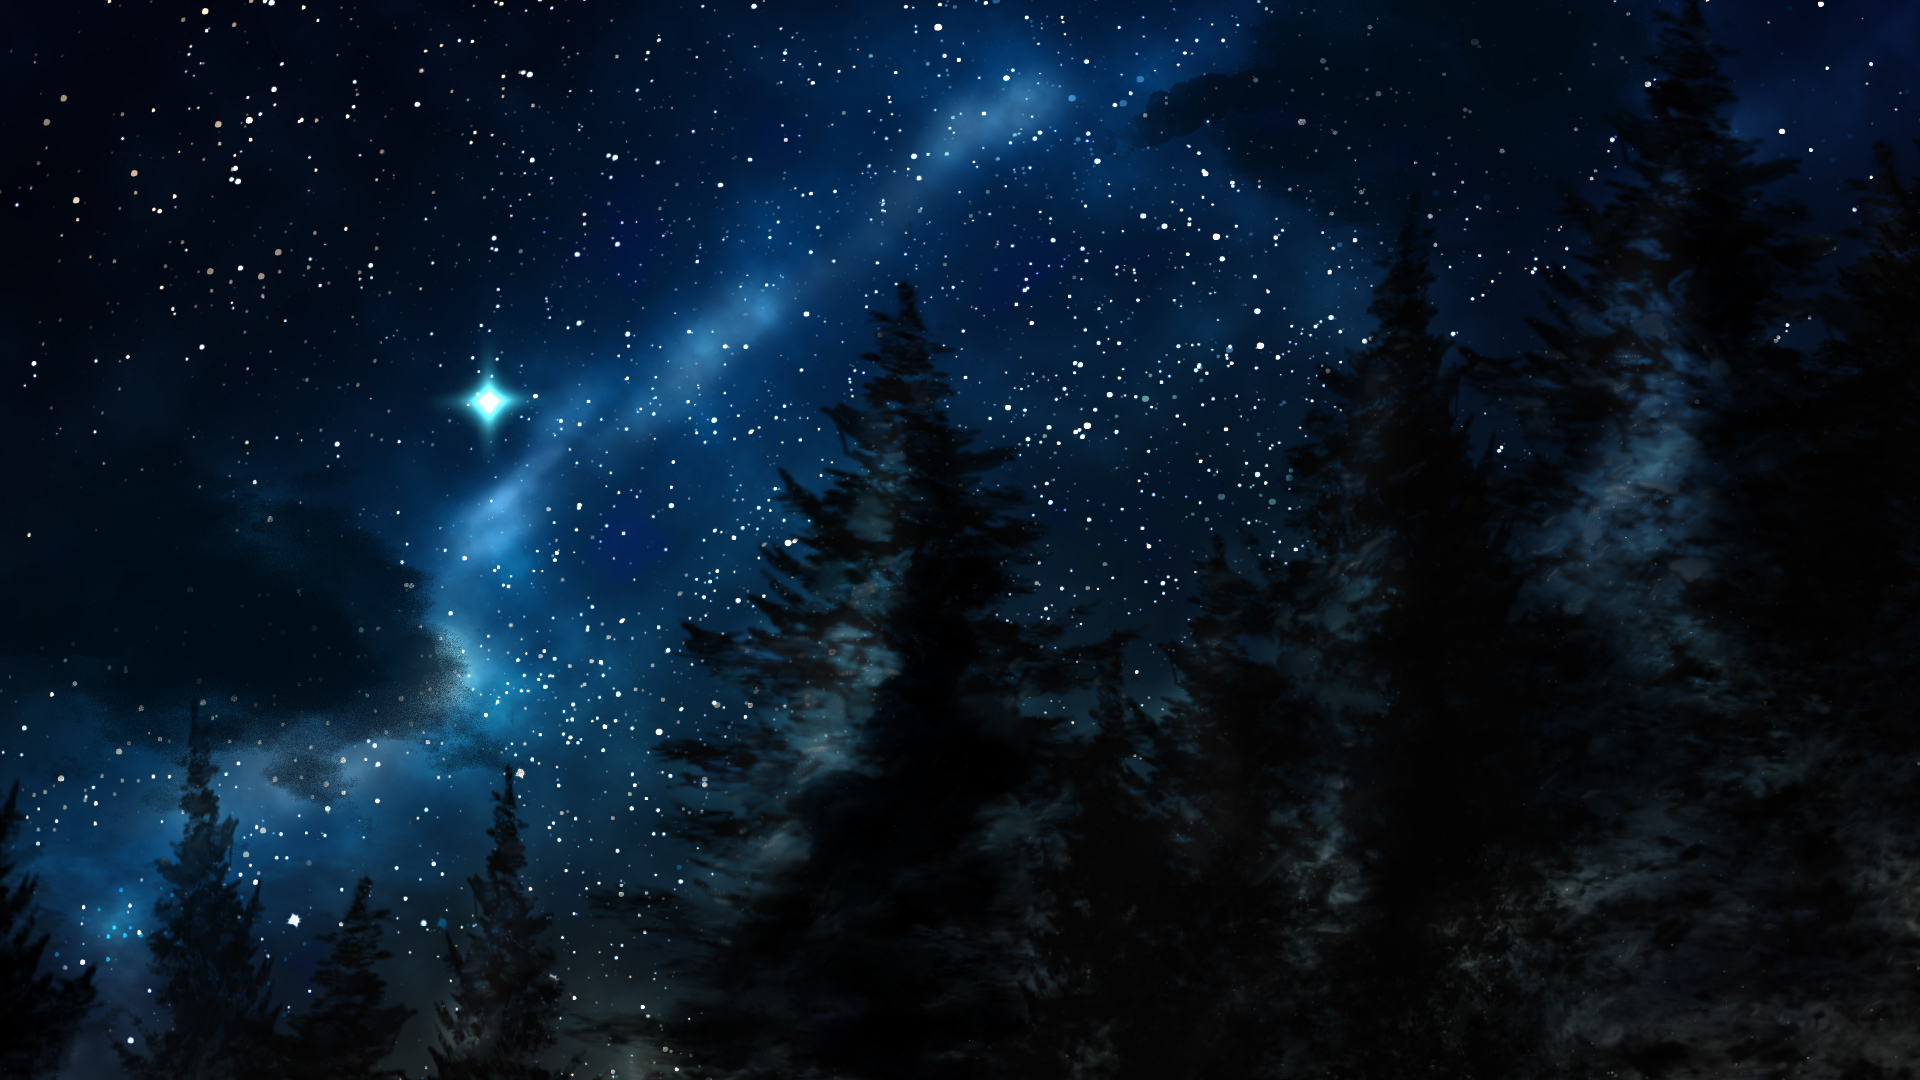 Beautiful Night Sky Scenery Winter sky by vronde 1920x1080